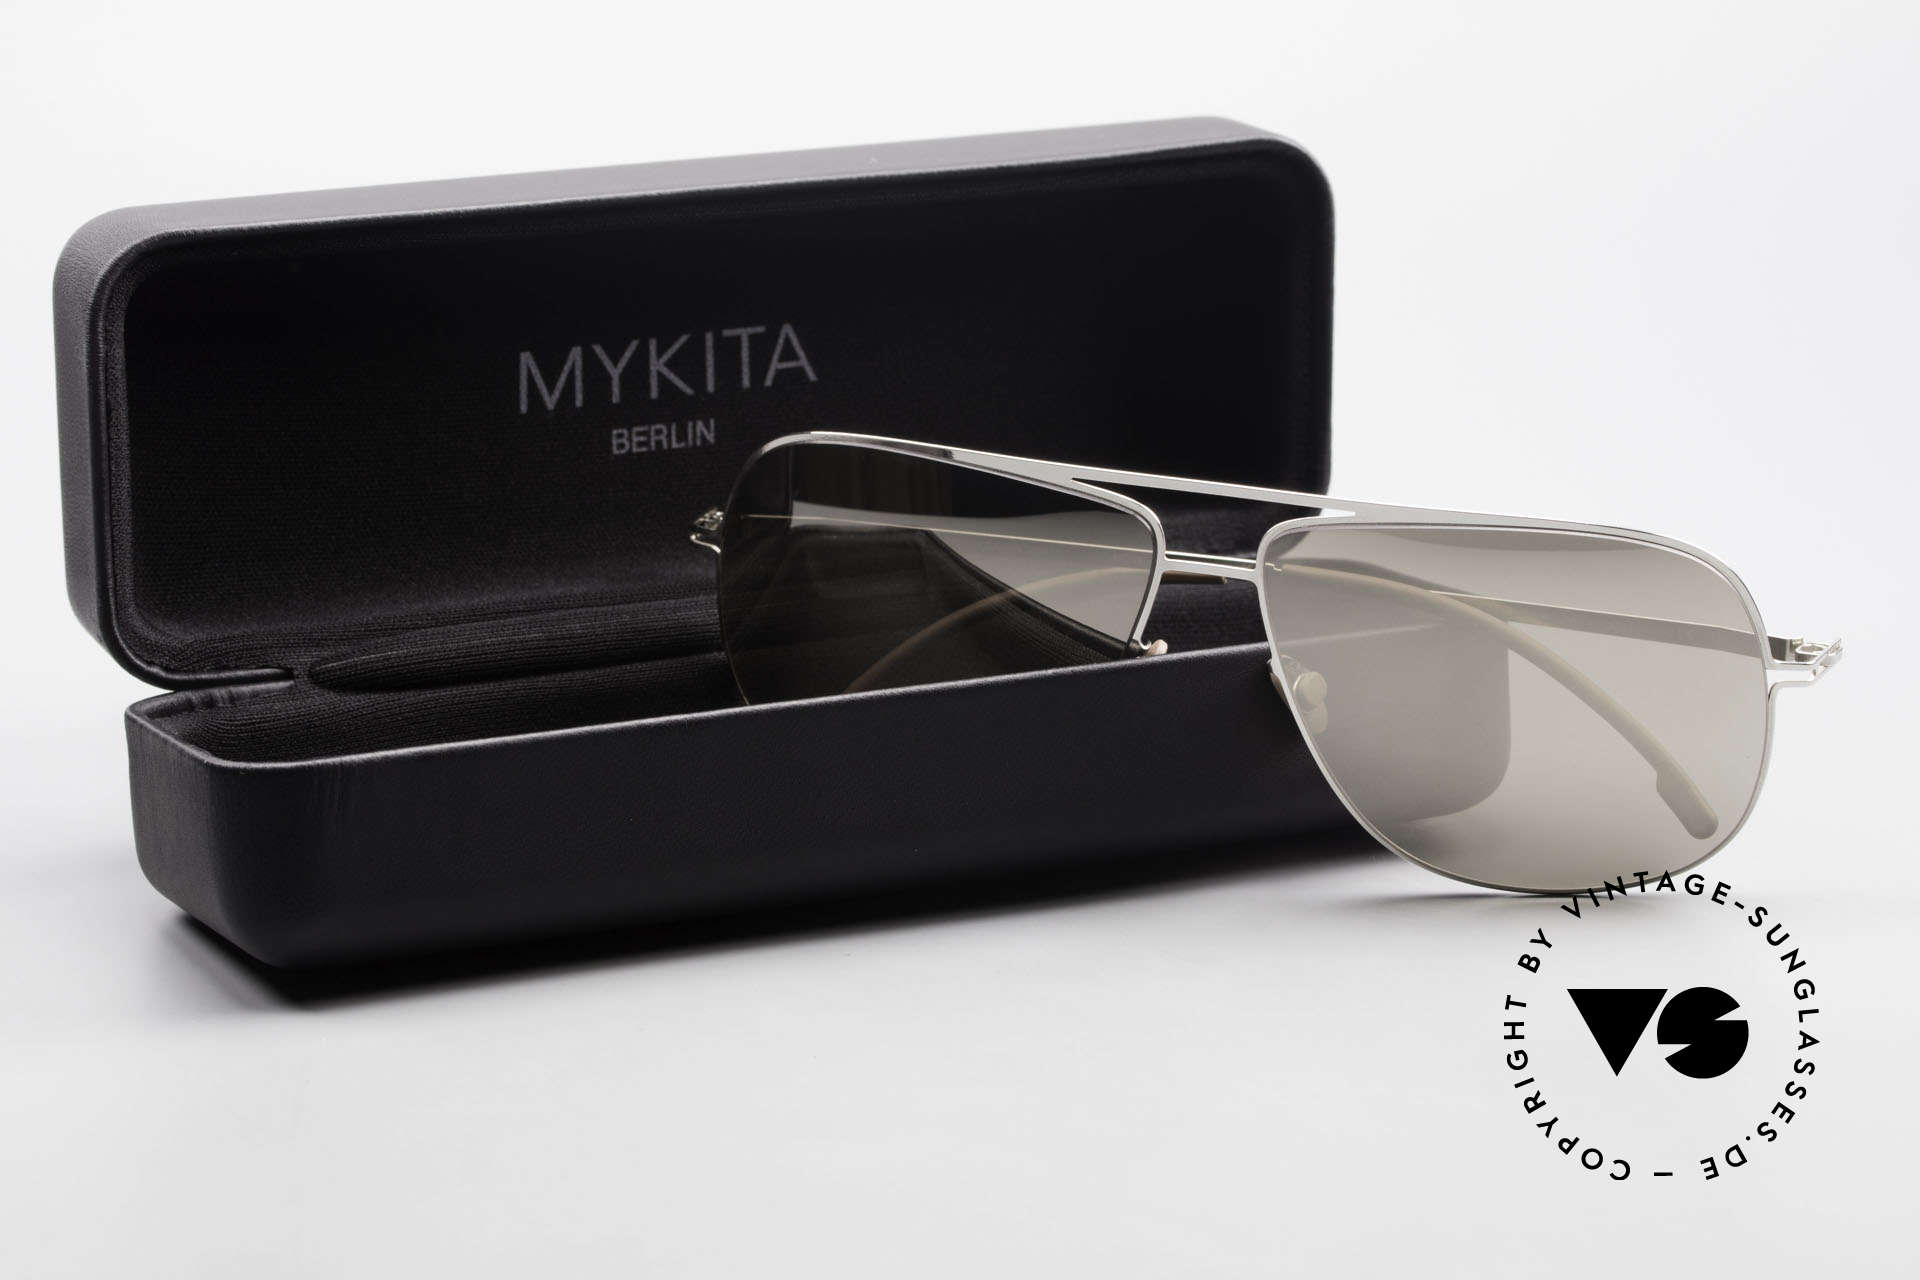 Mykita Jon Limited Platinum Edition 2011, Size: large, Made for Men and Women